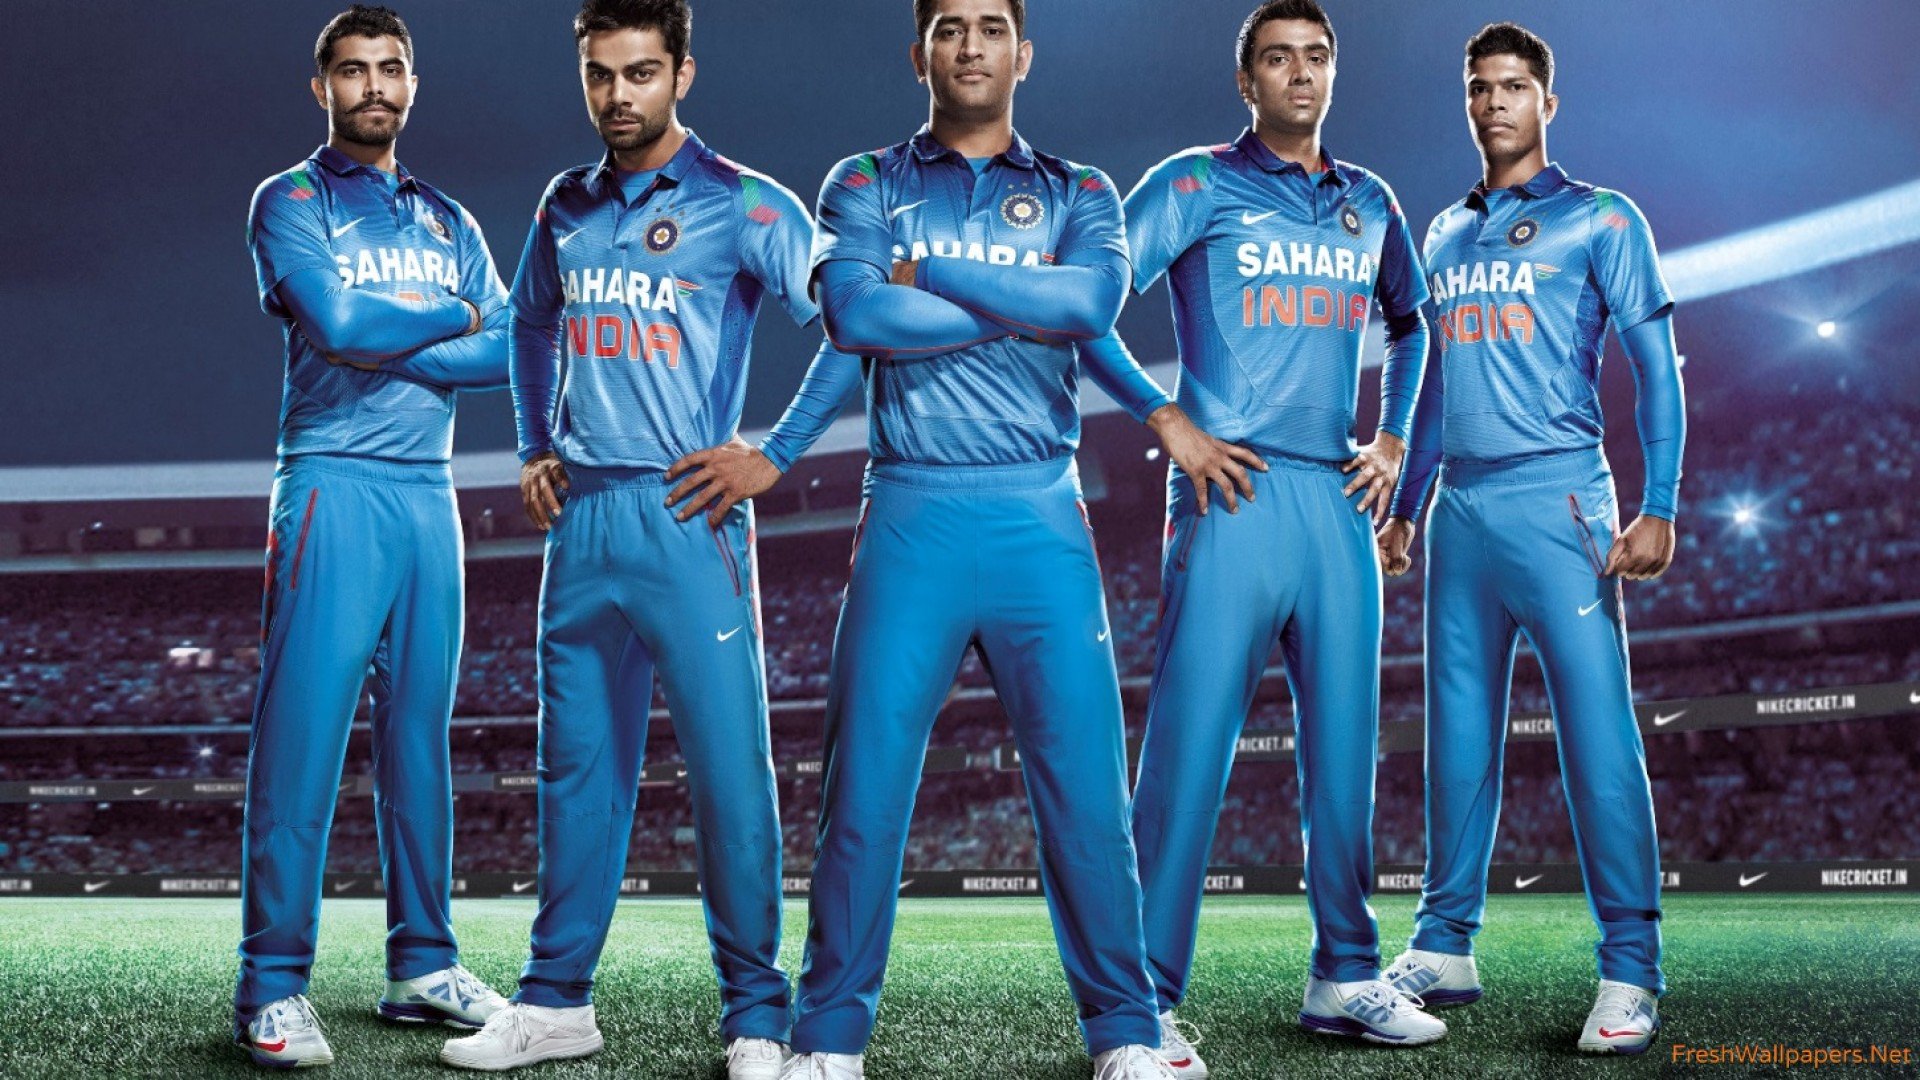 Wallpaper download cricket - Indian Cricket Team Hd Wallpapers